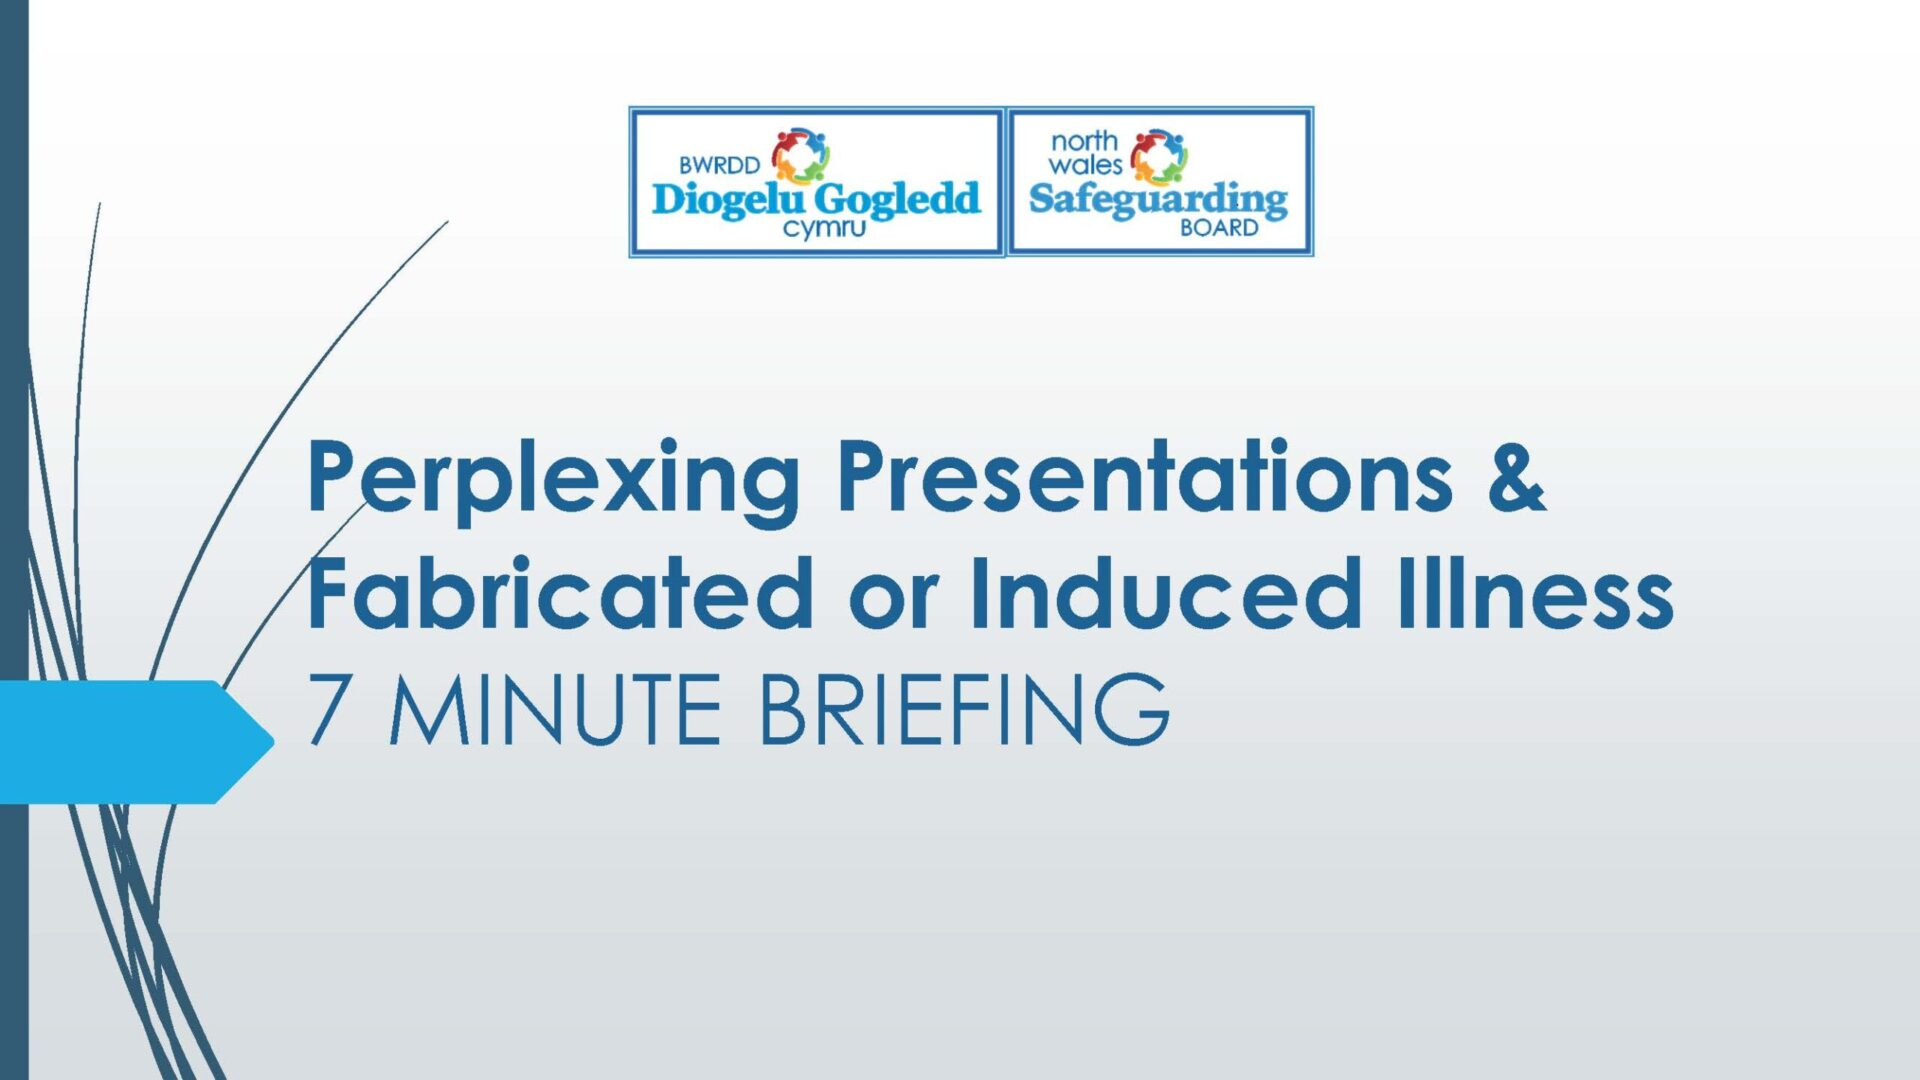 Perplexing Presentations Fabricated or Induced Illness